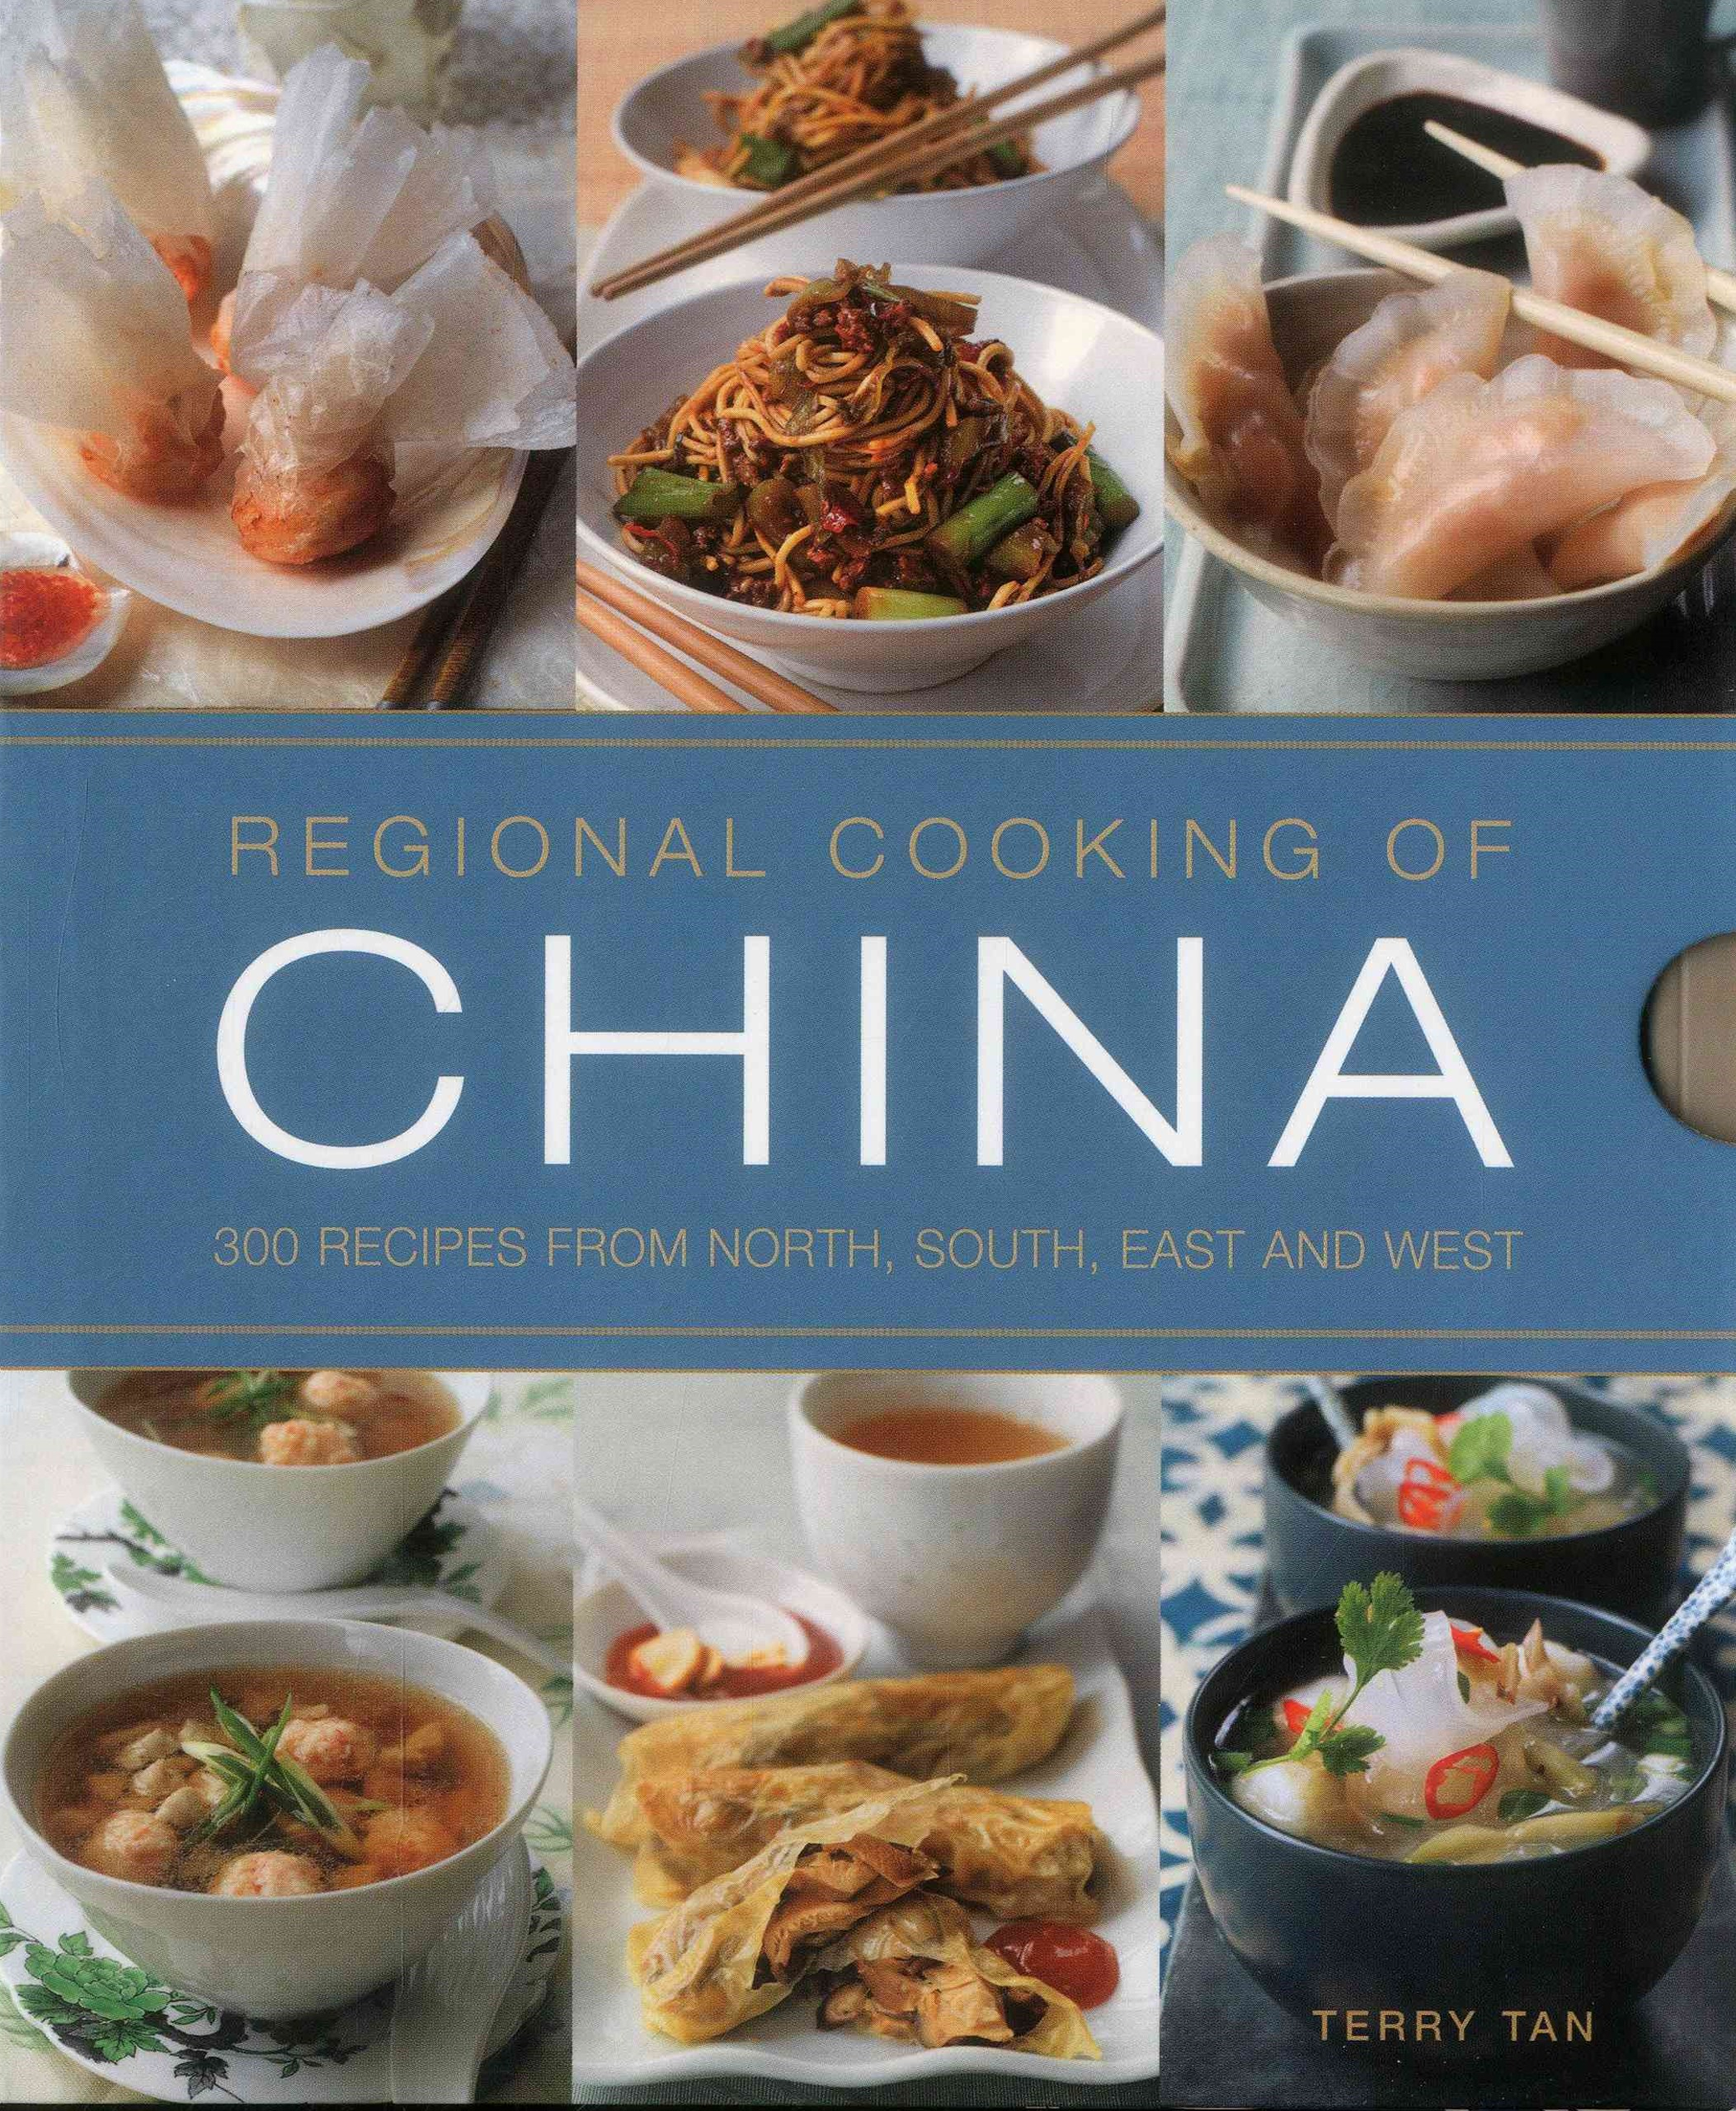 Regional Cooking of China